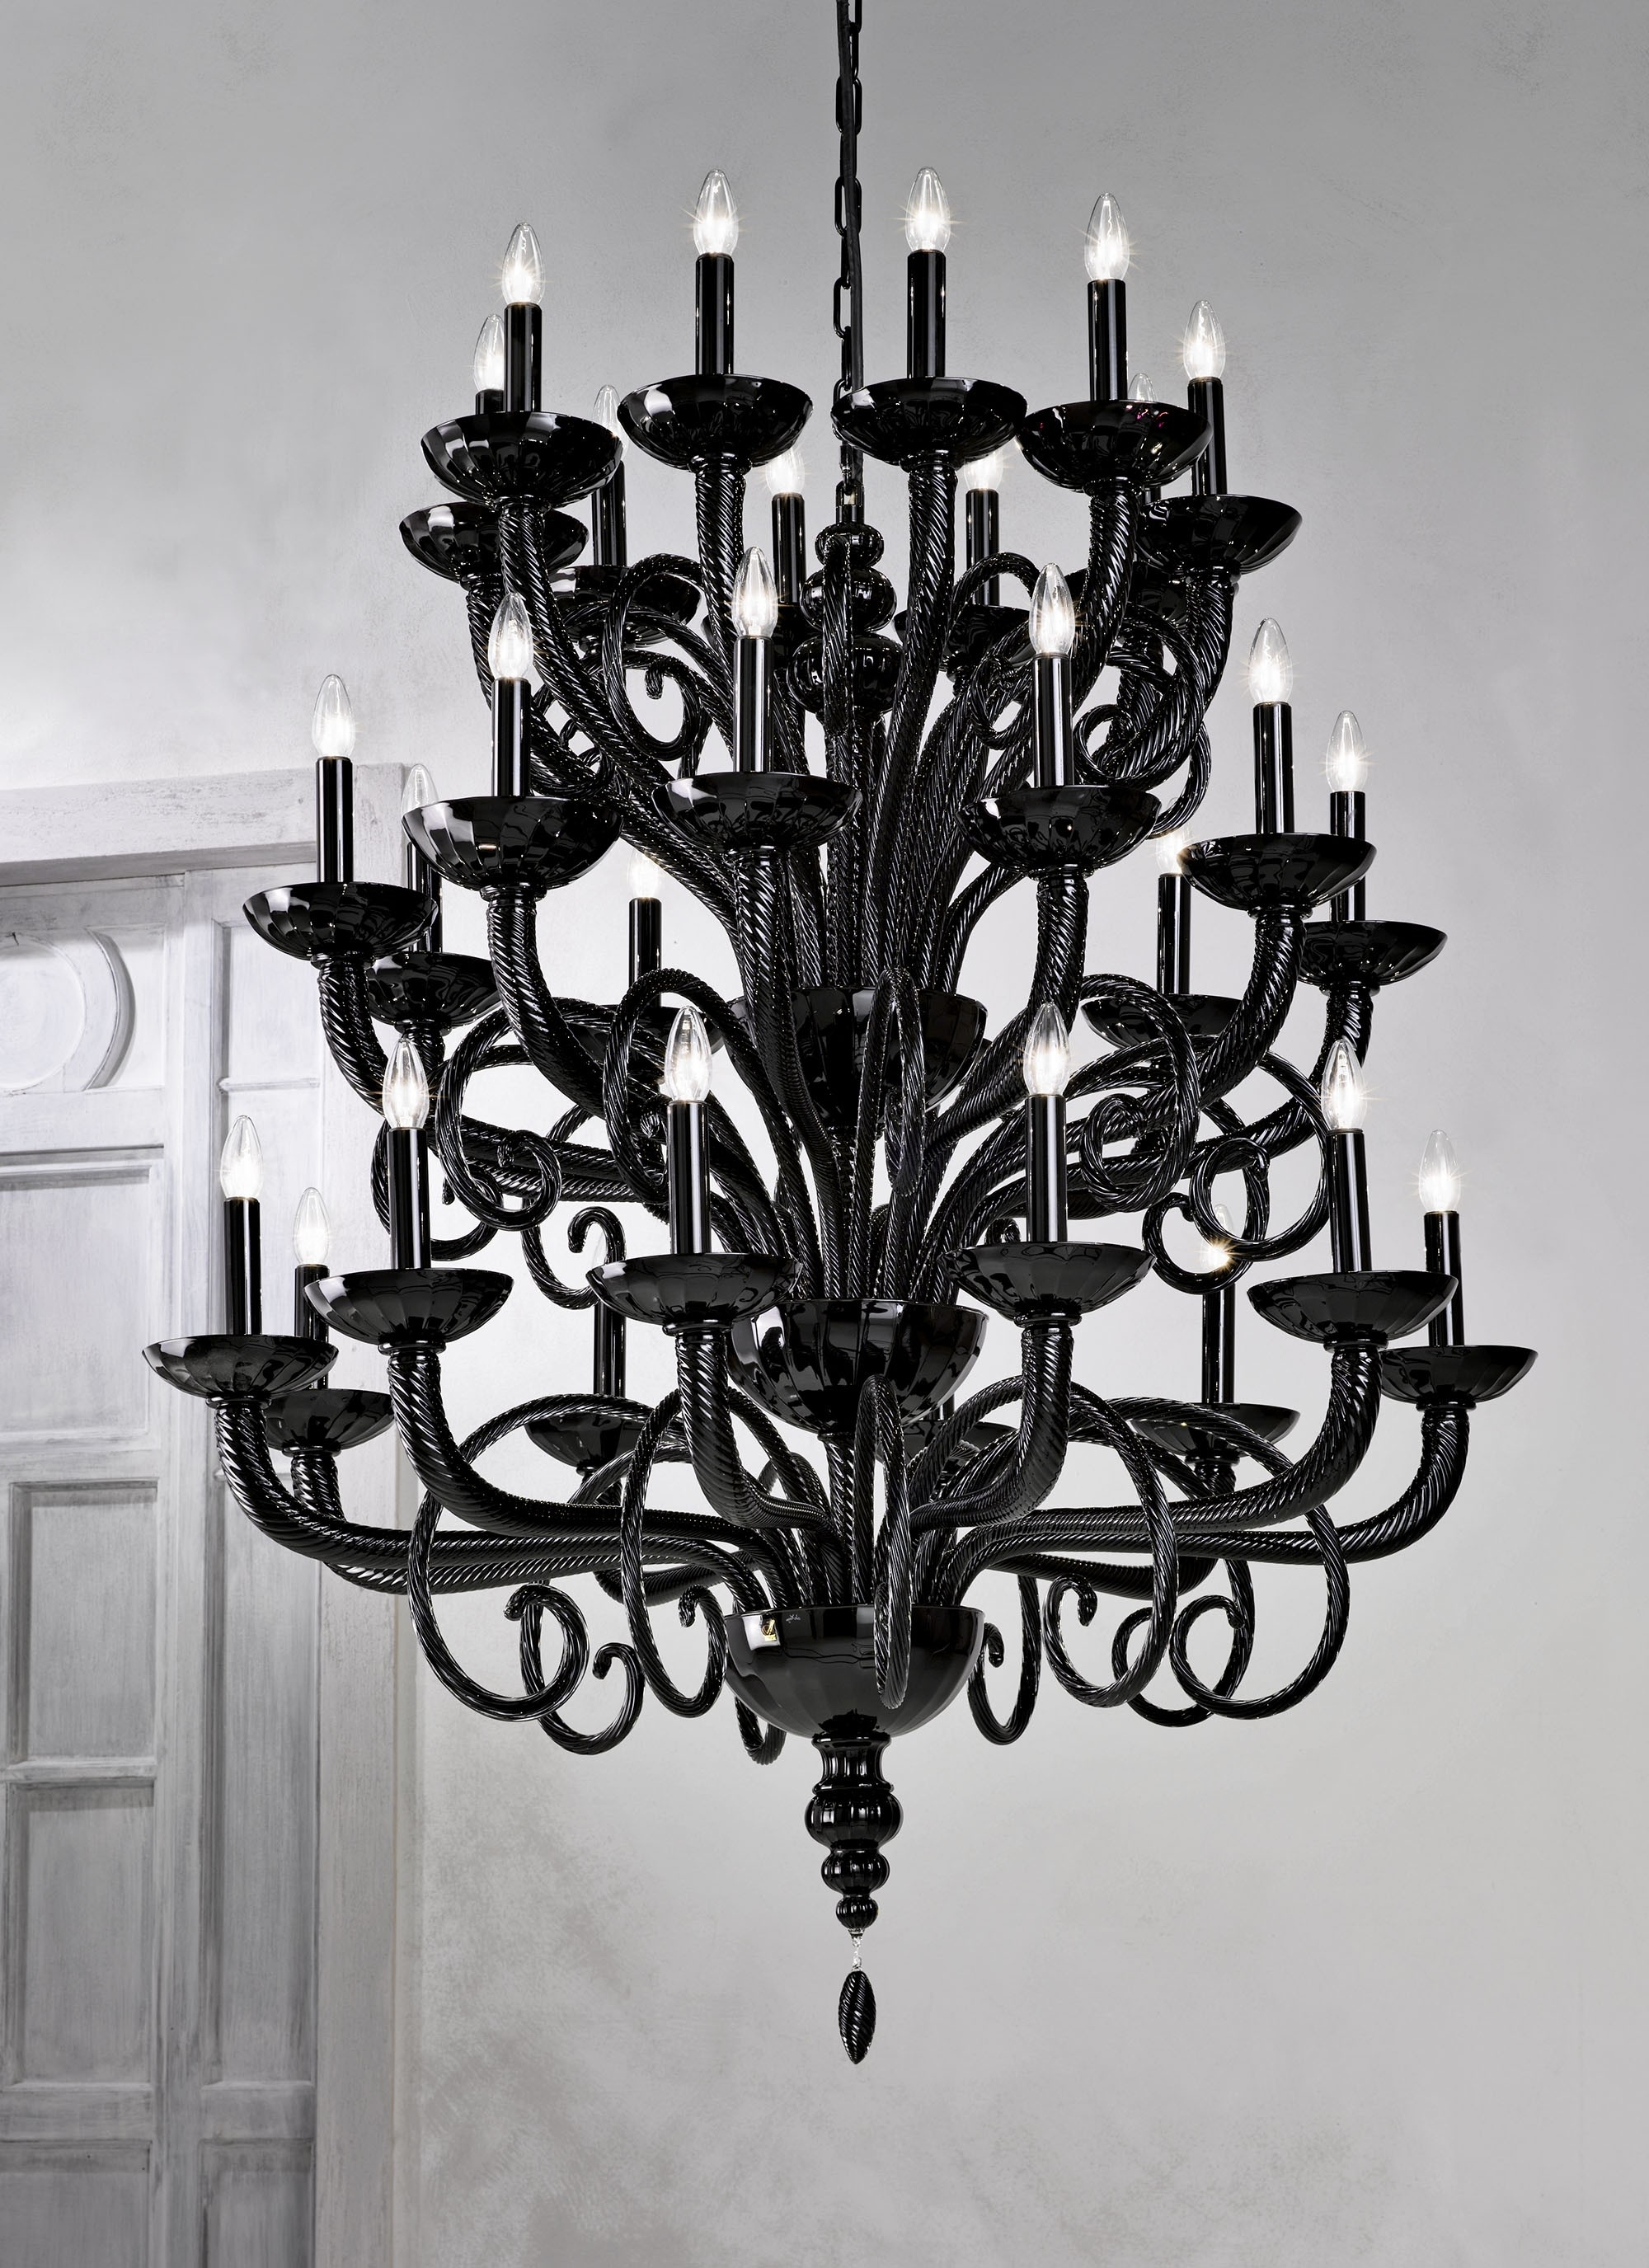 Large Traditional Black Grand Murano Chandelier L6011K30 – Murano Intended For Fashionable Large Black Chandelier (View 7 of 15)